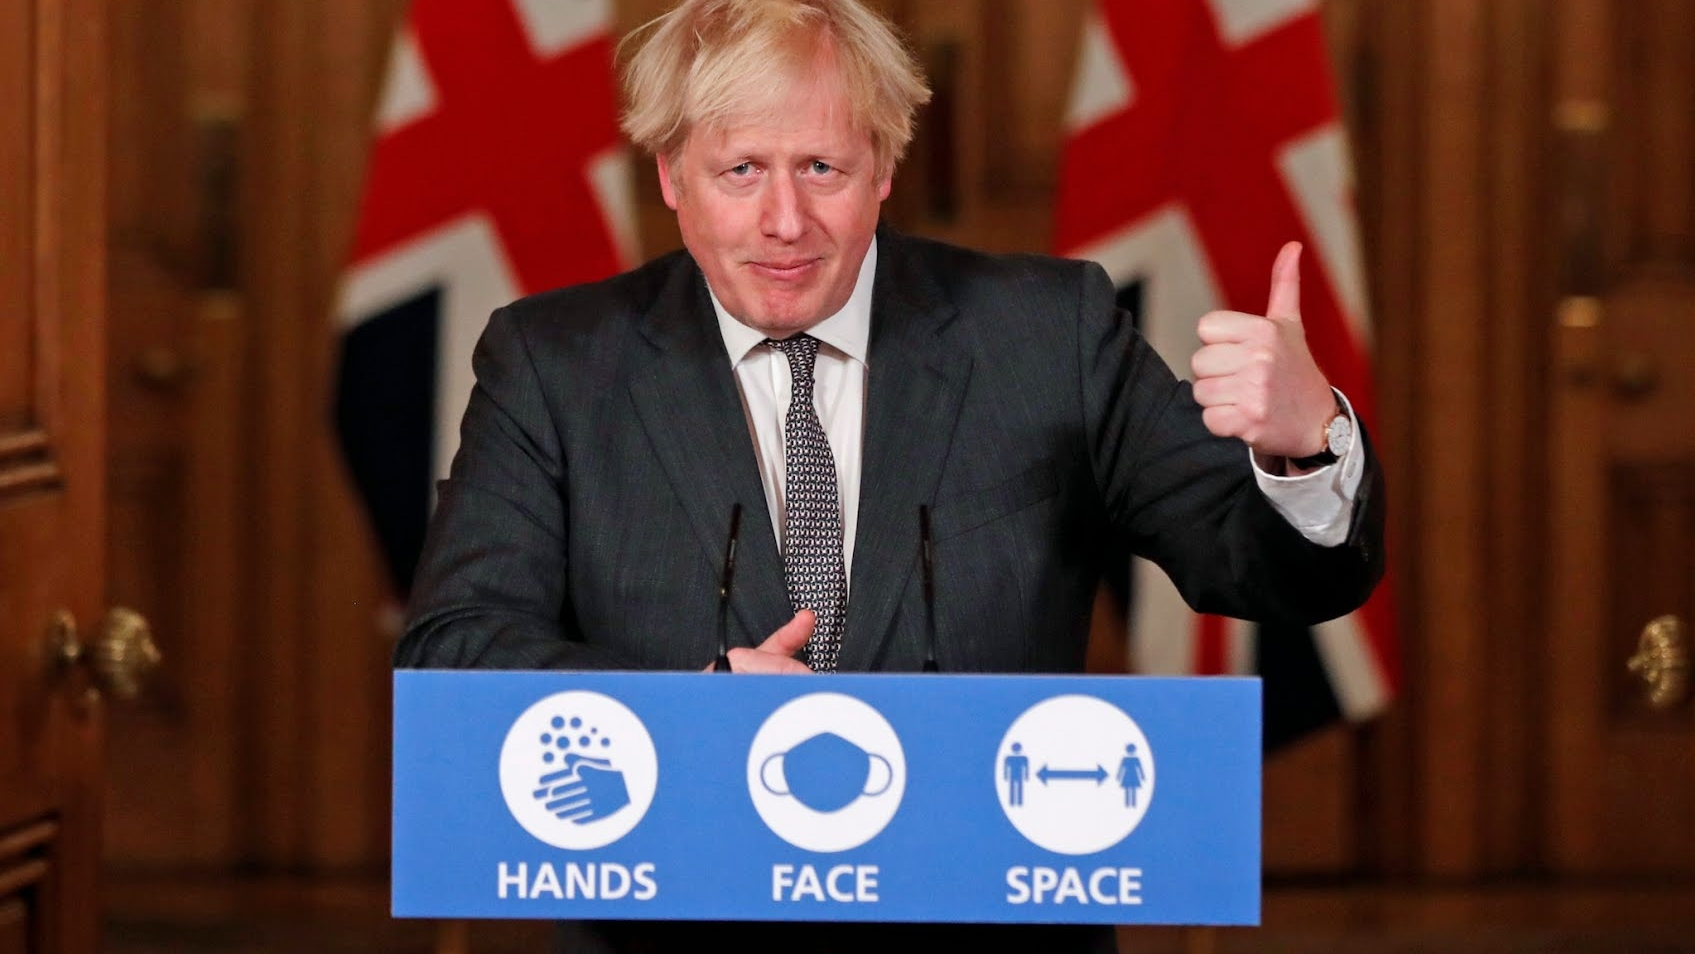 British PM Boris Johnson may lose his seat in the next general election